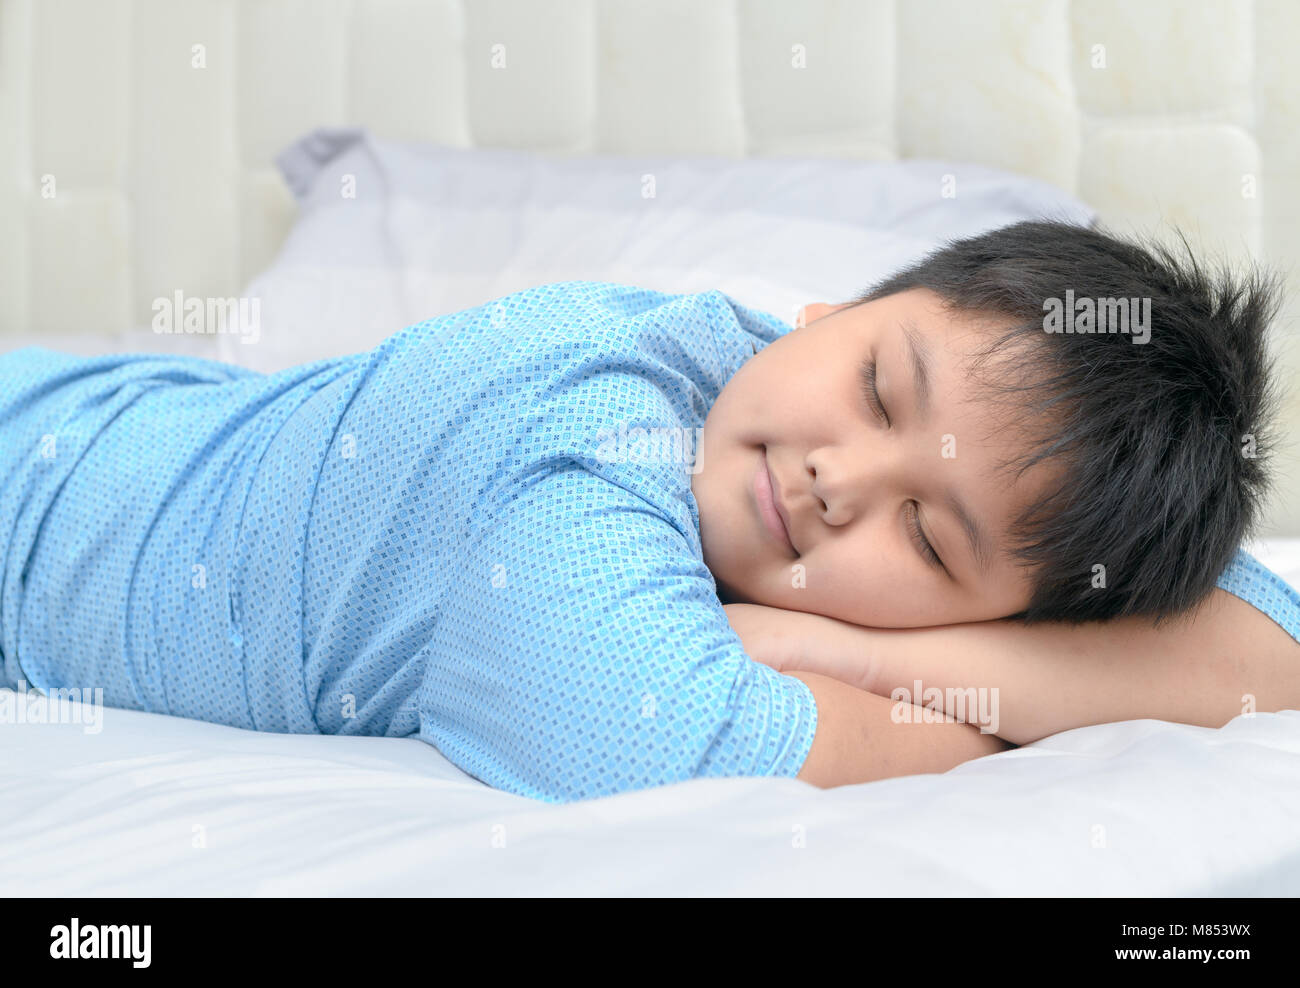 Obese fat boy sweet dream on his arm on bed healthy concept stock image